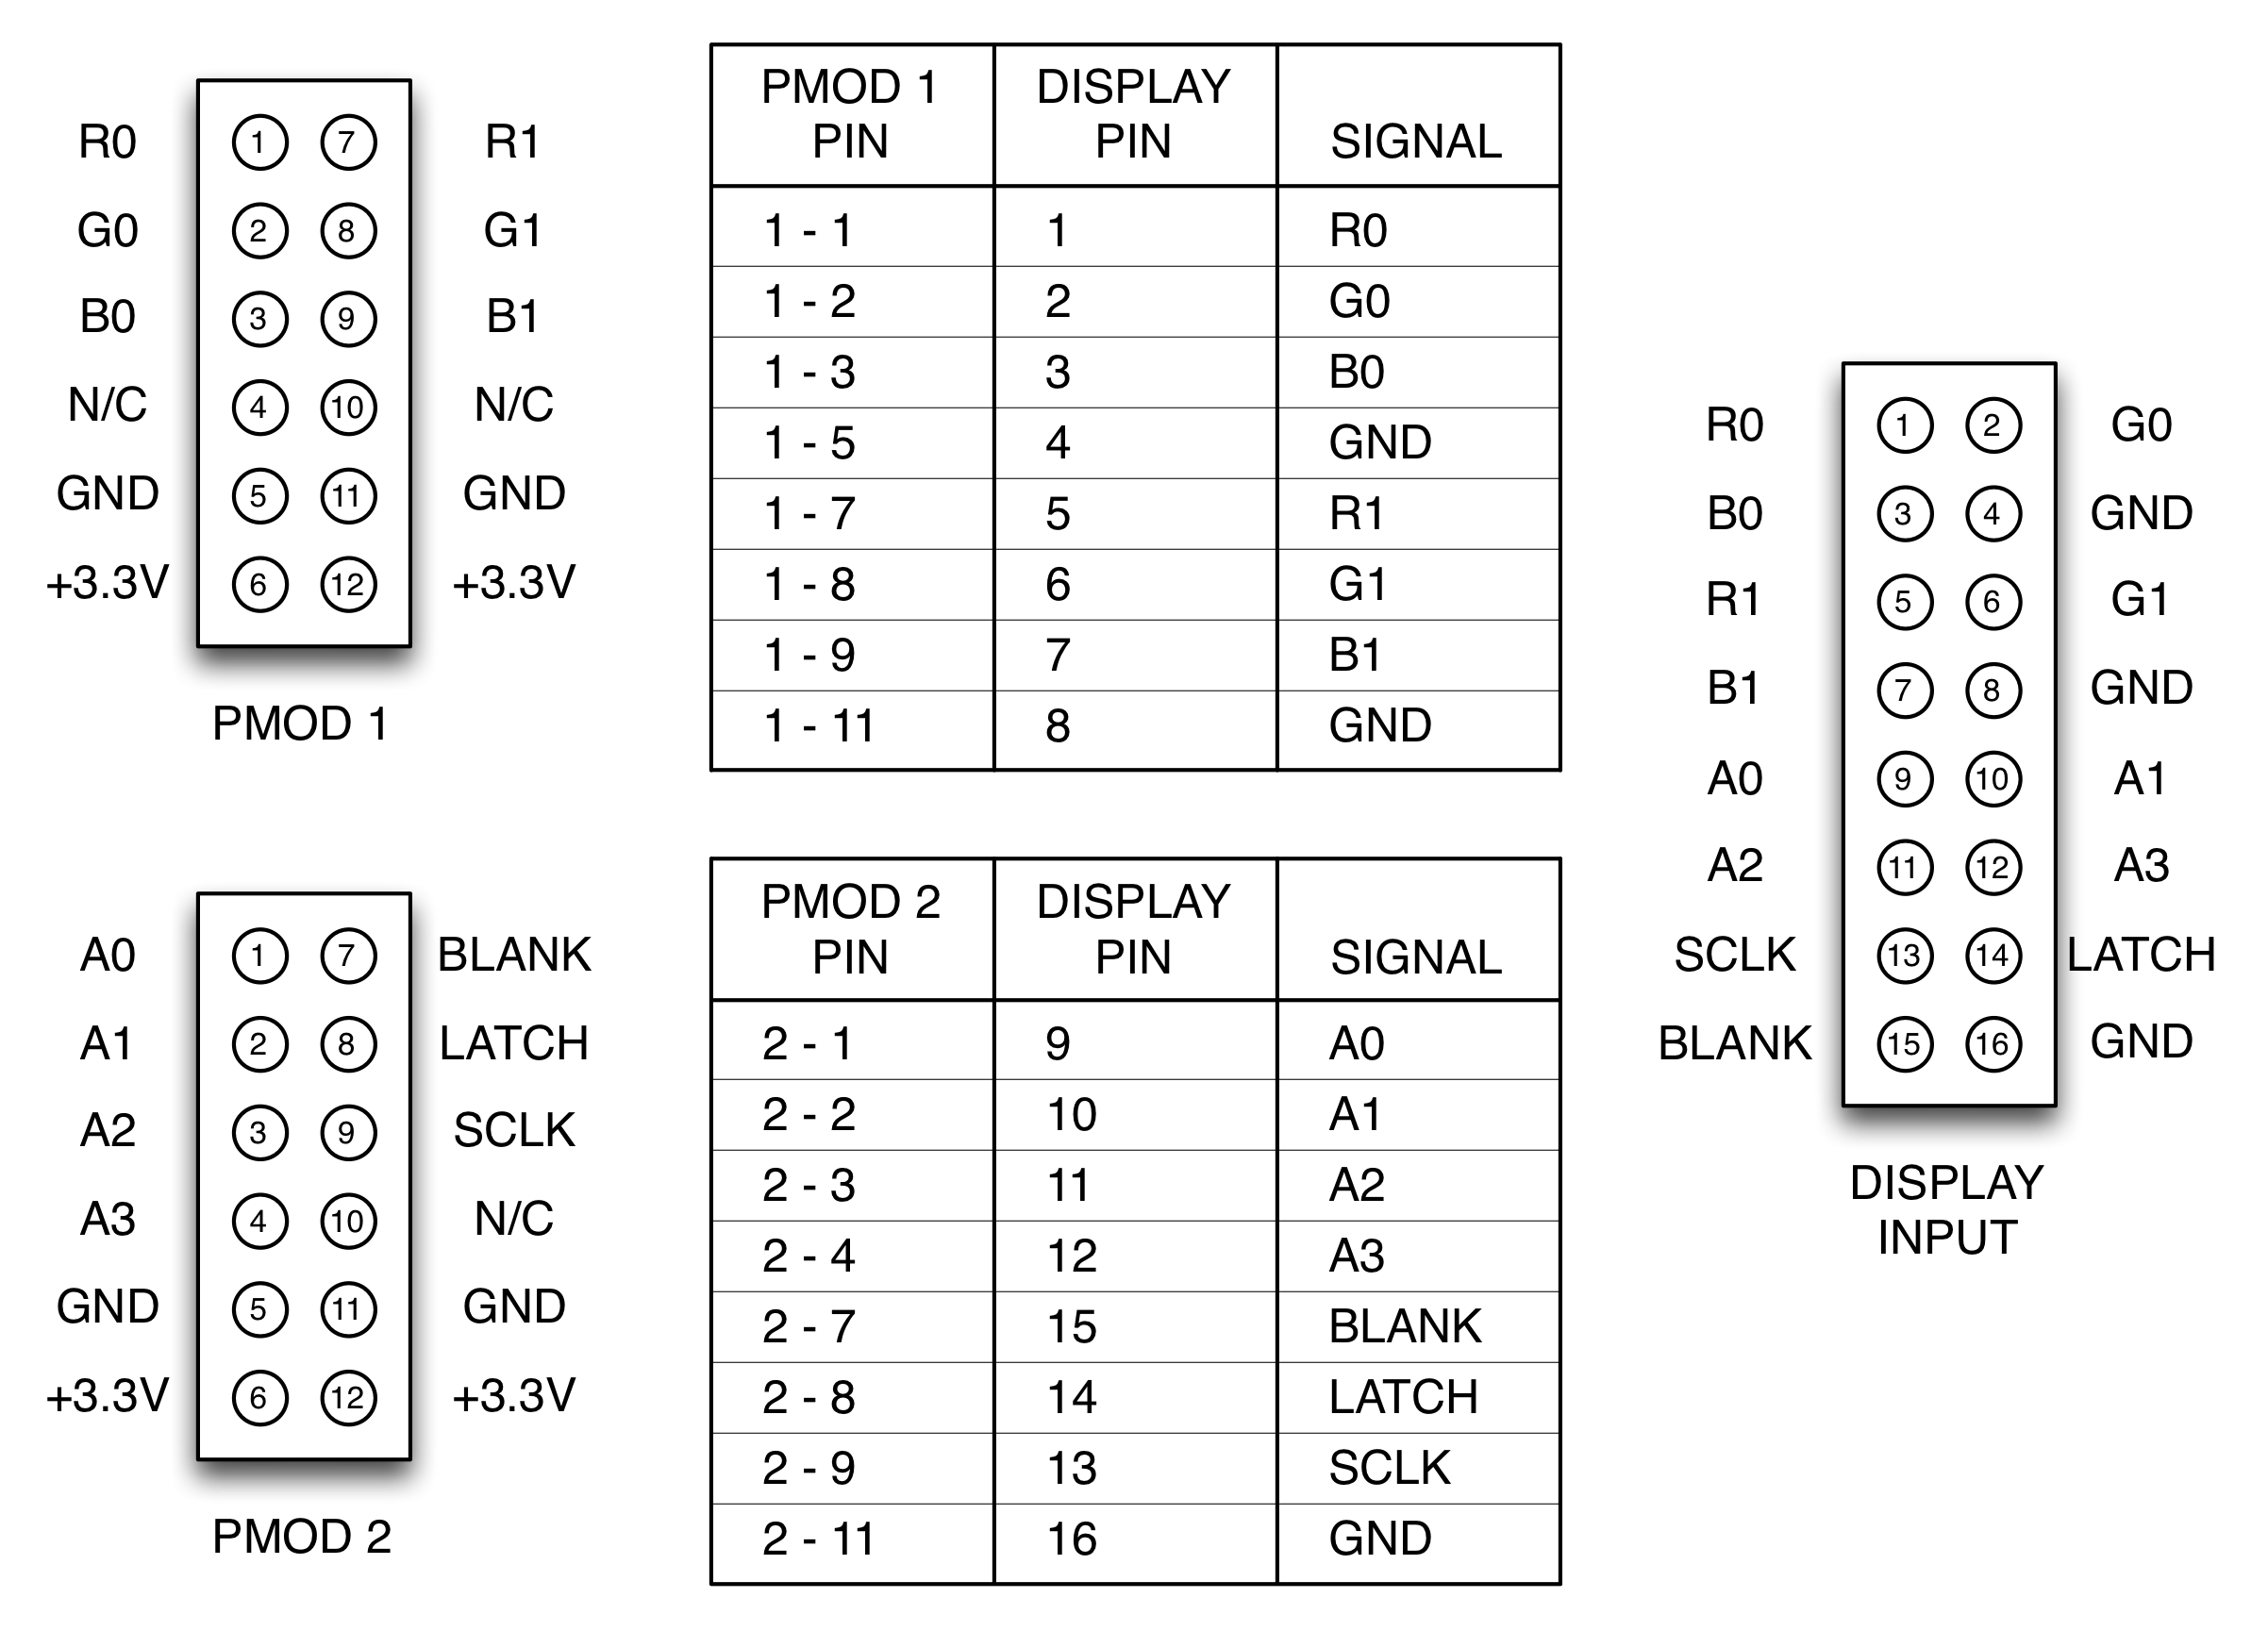 Rgb Led Panel Display Data Connections on Dc Power Jack Connectors Diagram